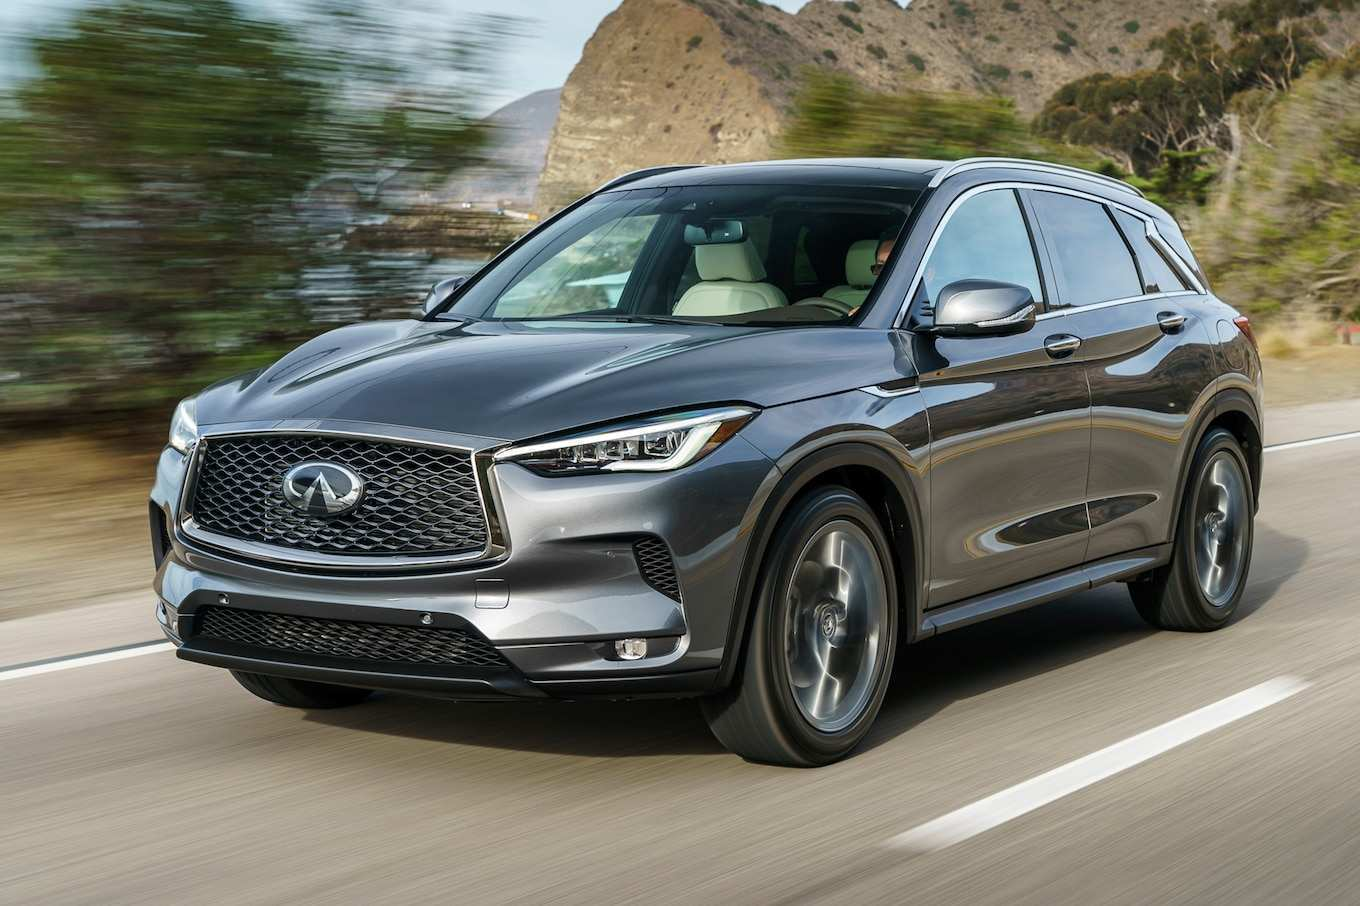 57 Best Review 2019 Infiniti Qx50 Crossover New Review by 2019 Infiniti Qx50 Crossover